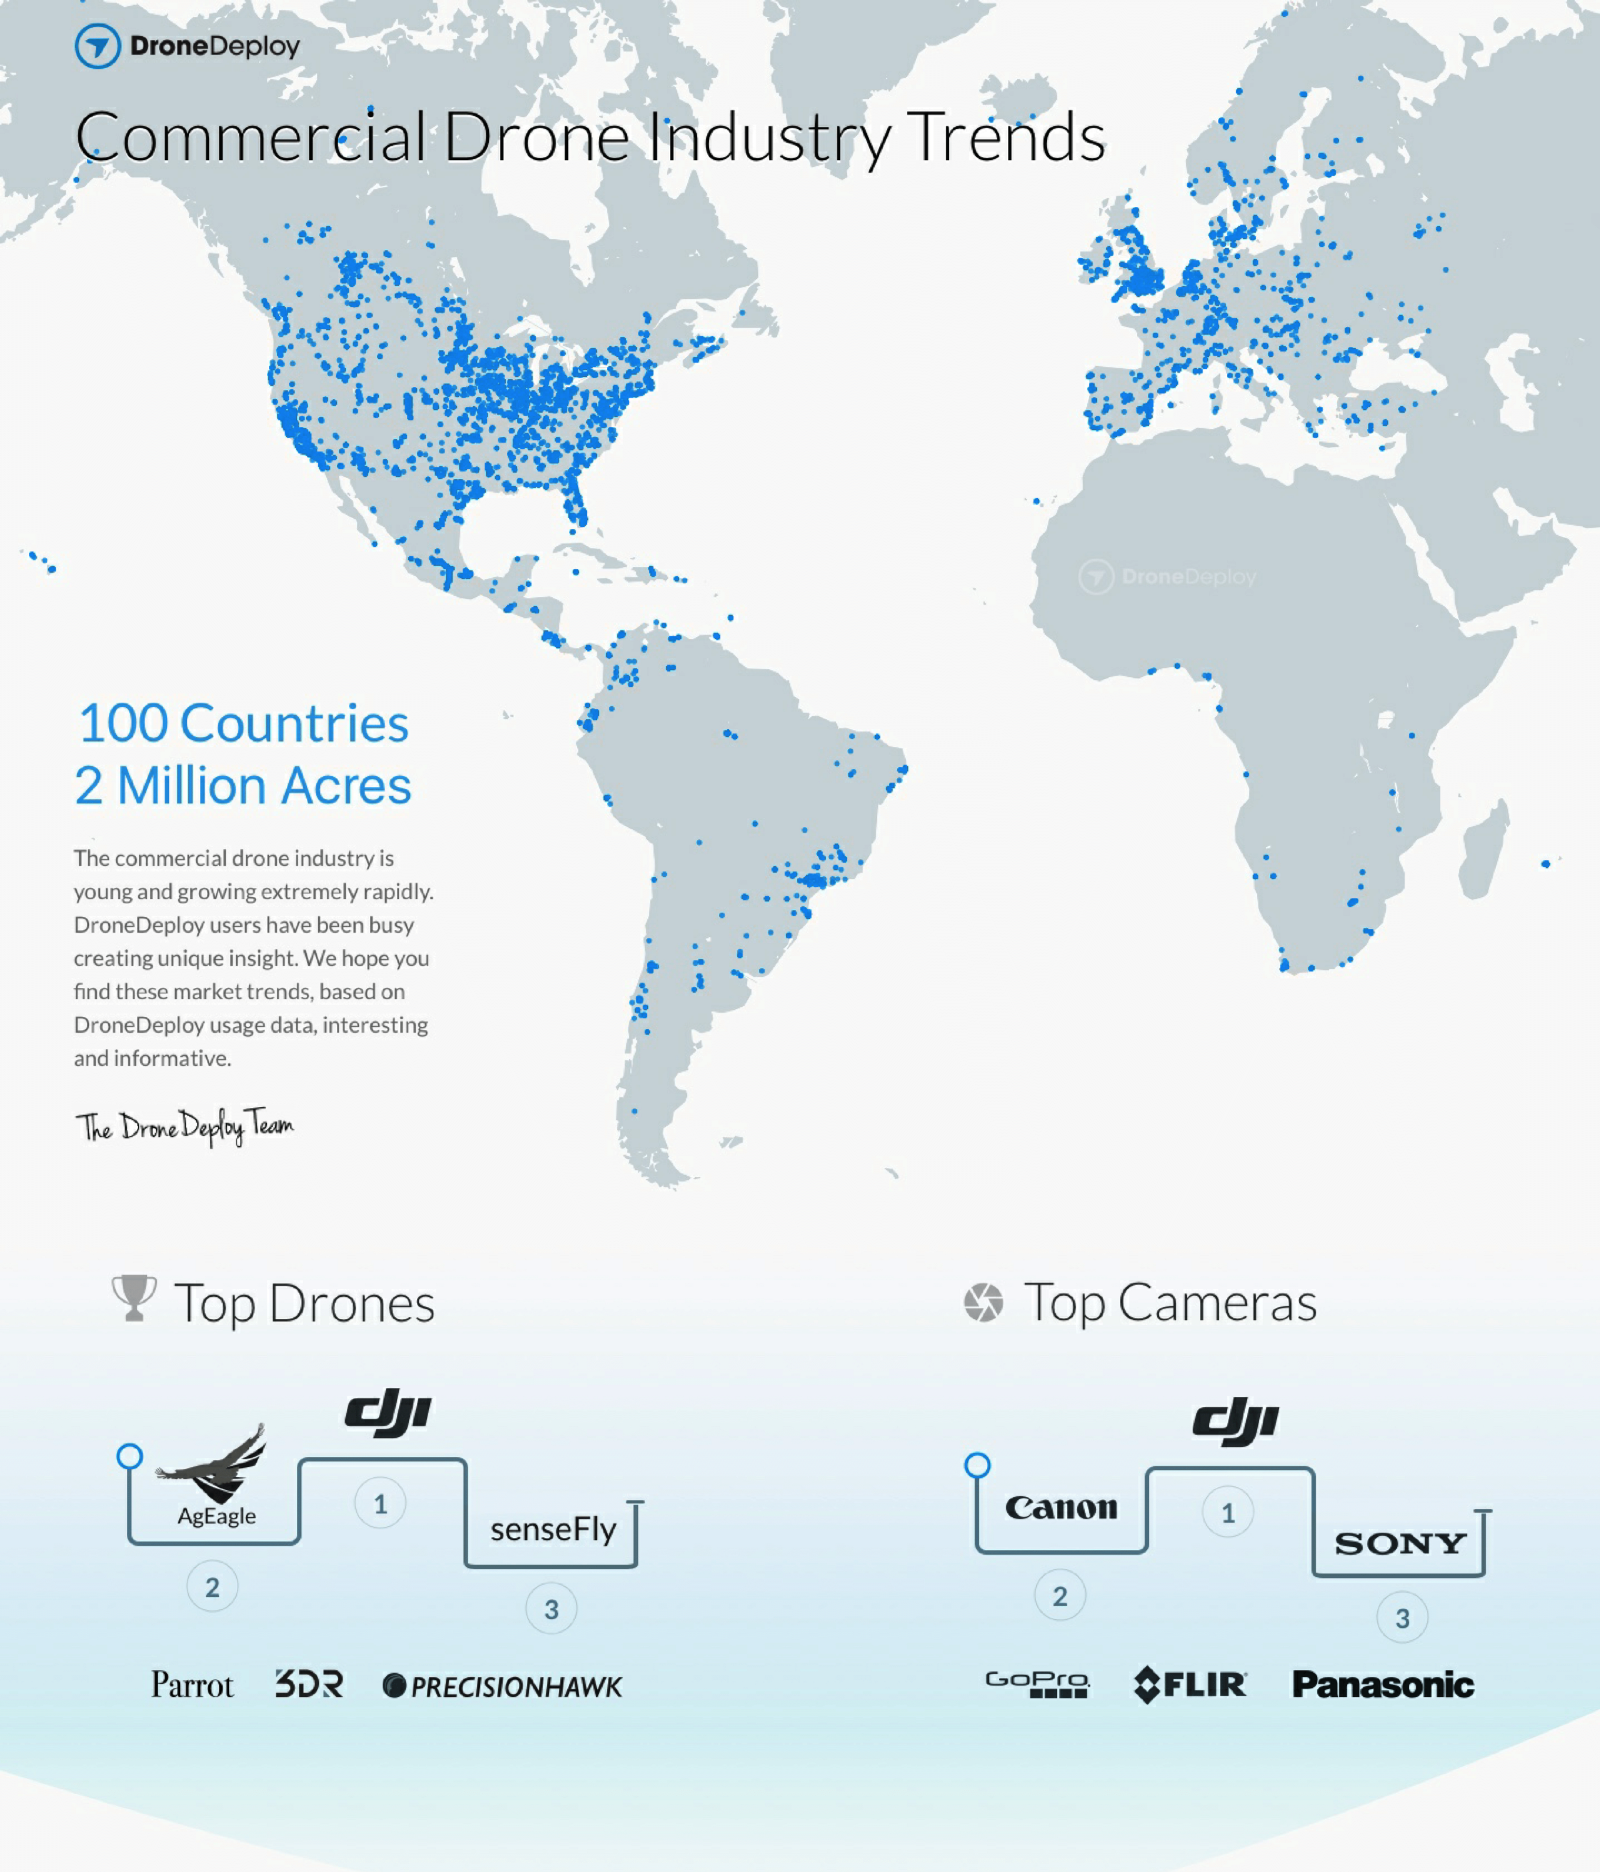 Dronedeploy reveals commercial drone industry trends browser tab to access links to interactive maps and video to learn more about the trends shown in the infographic check out our post a closer look at gumiabroncs Choice Image